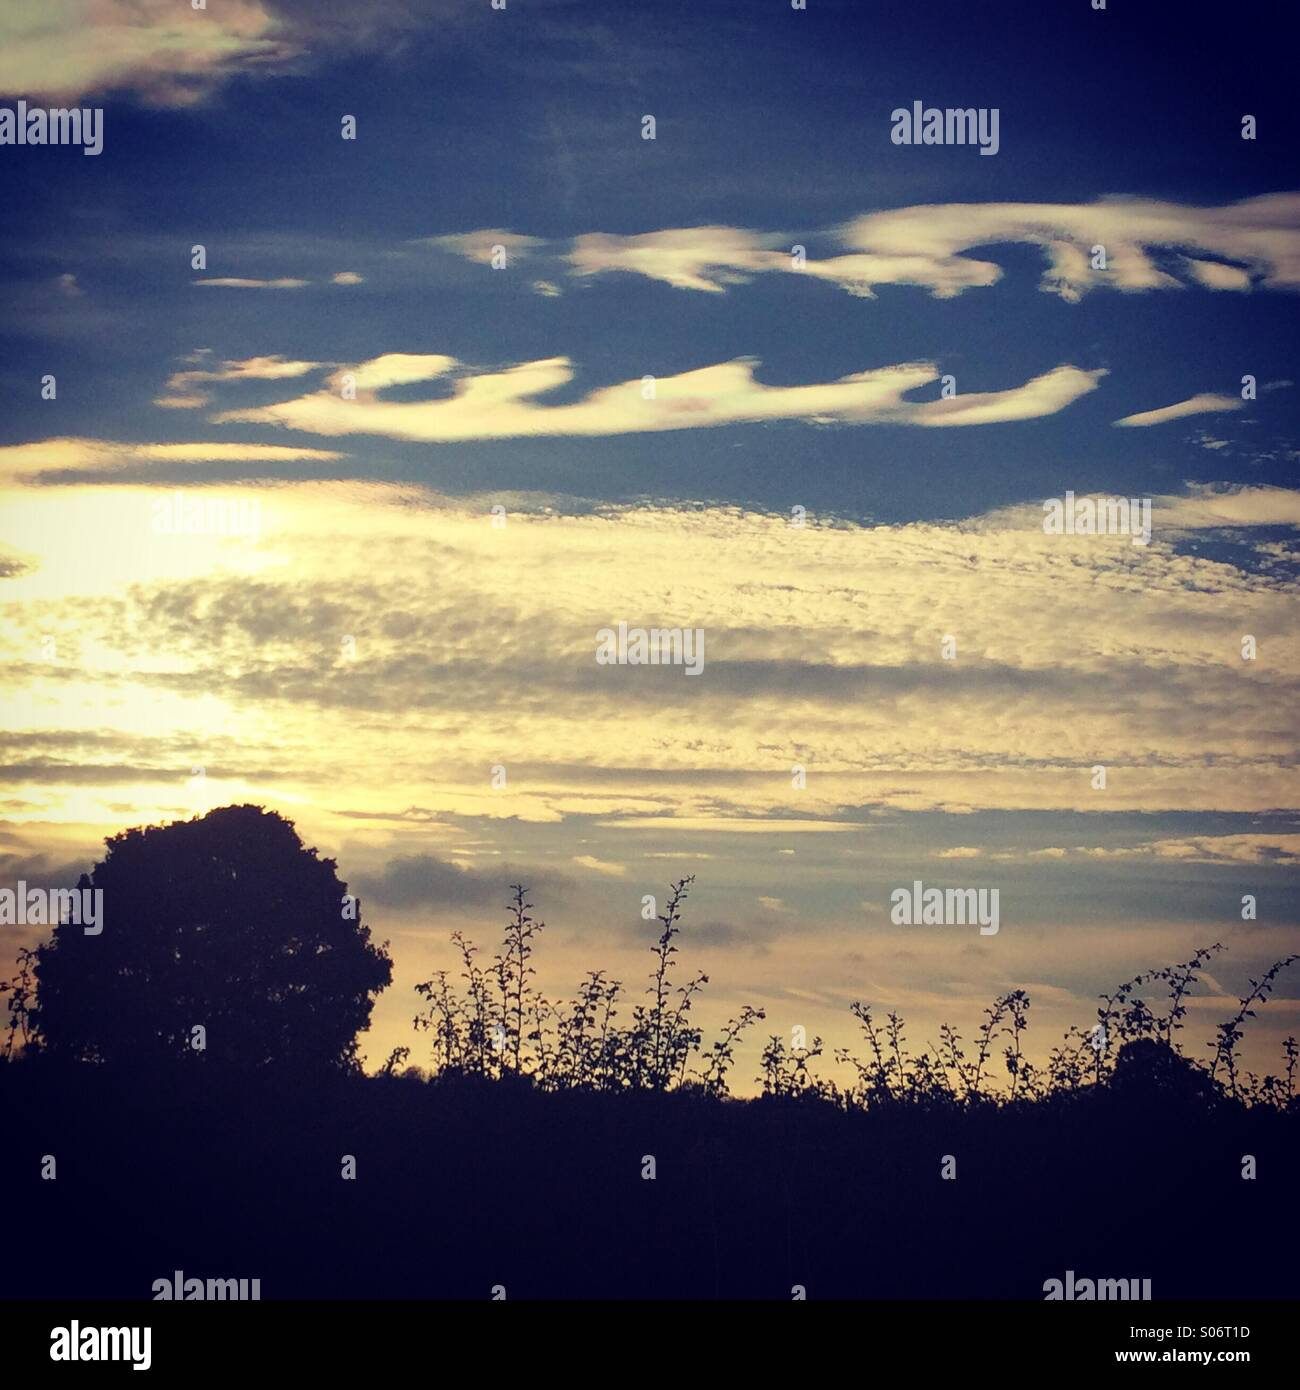 Wave pattern in clouds at dusk - Stock Image